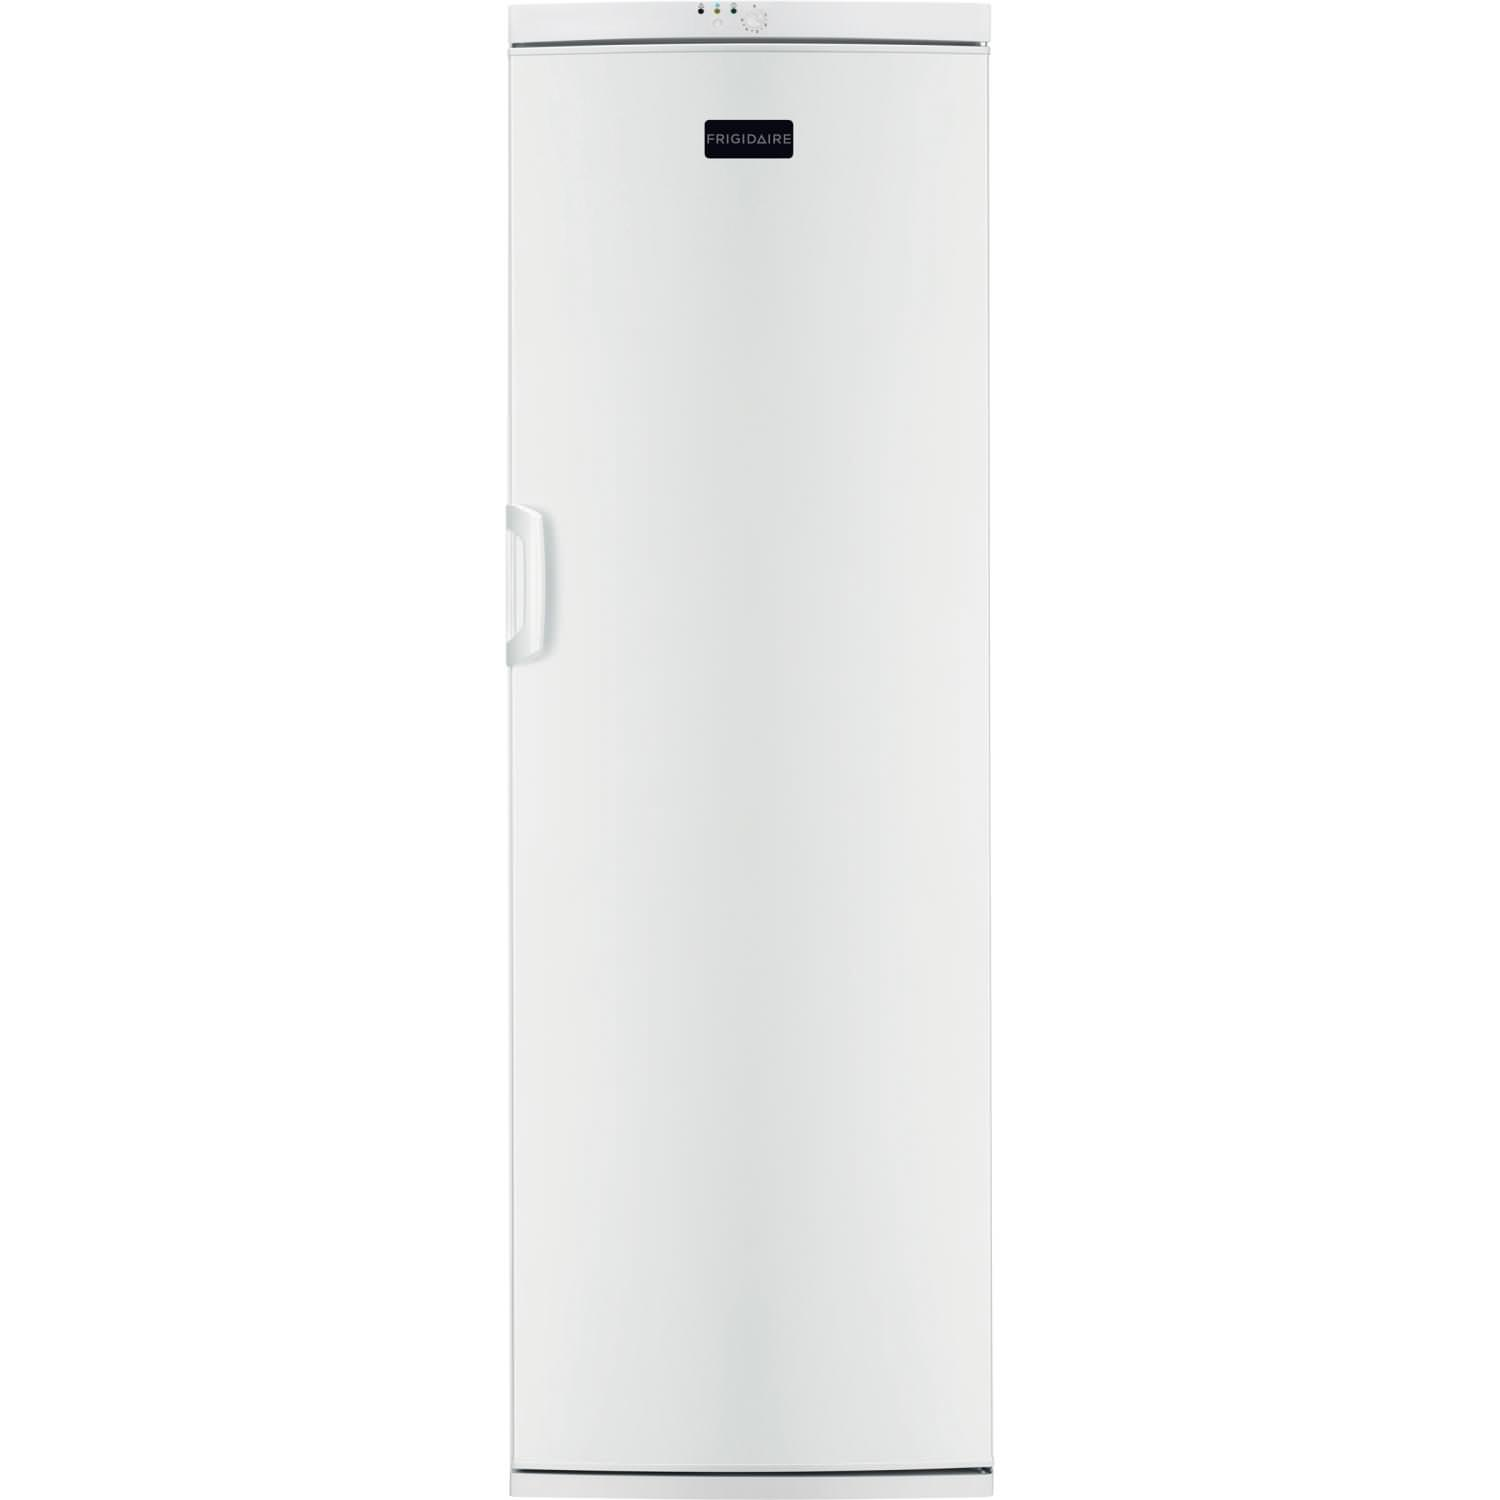 Frigidaire FRCF185W 227 Litre Tall Frost Free Freestanding Freezer